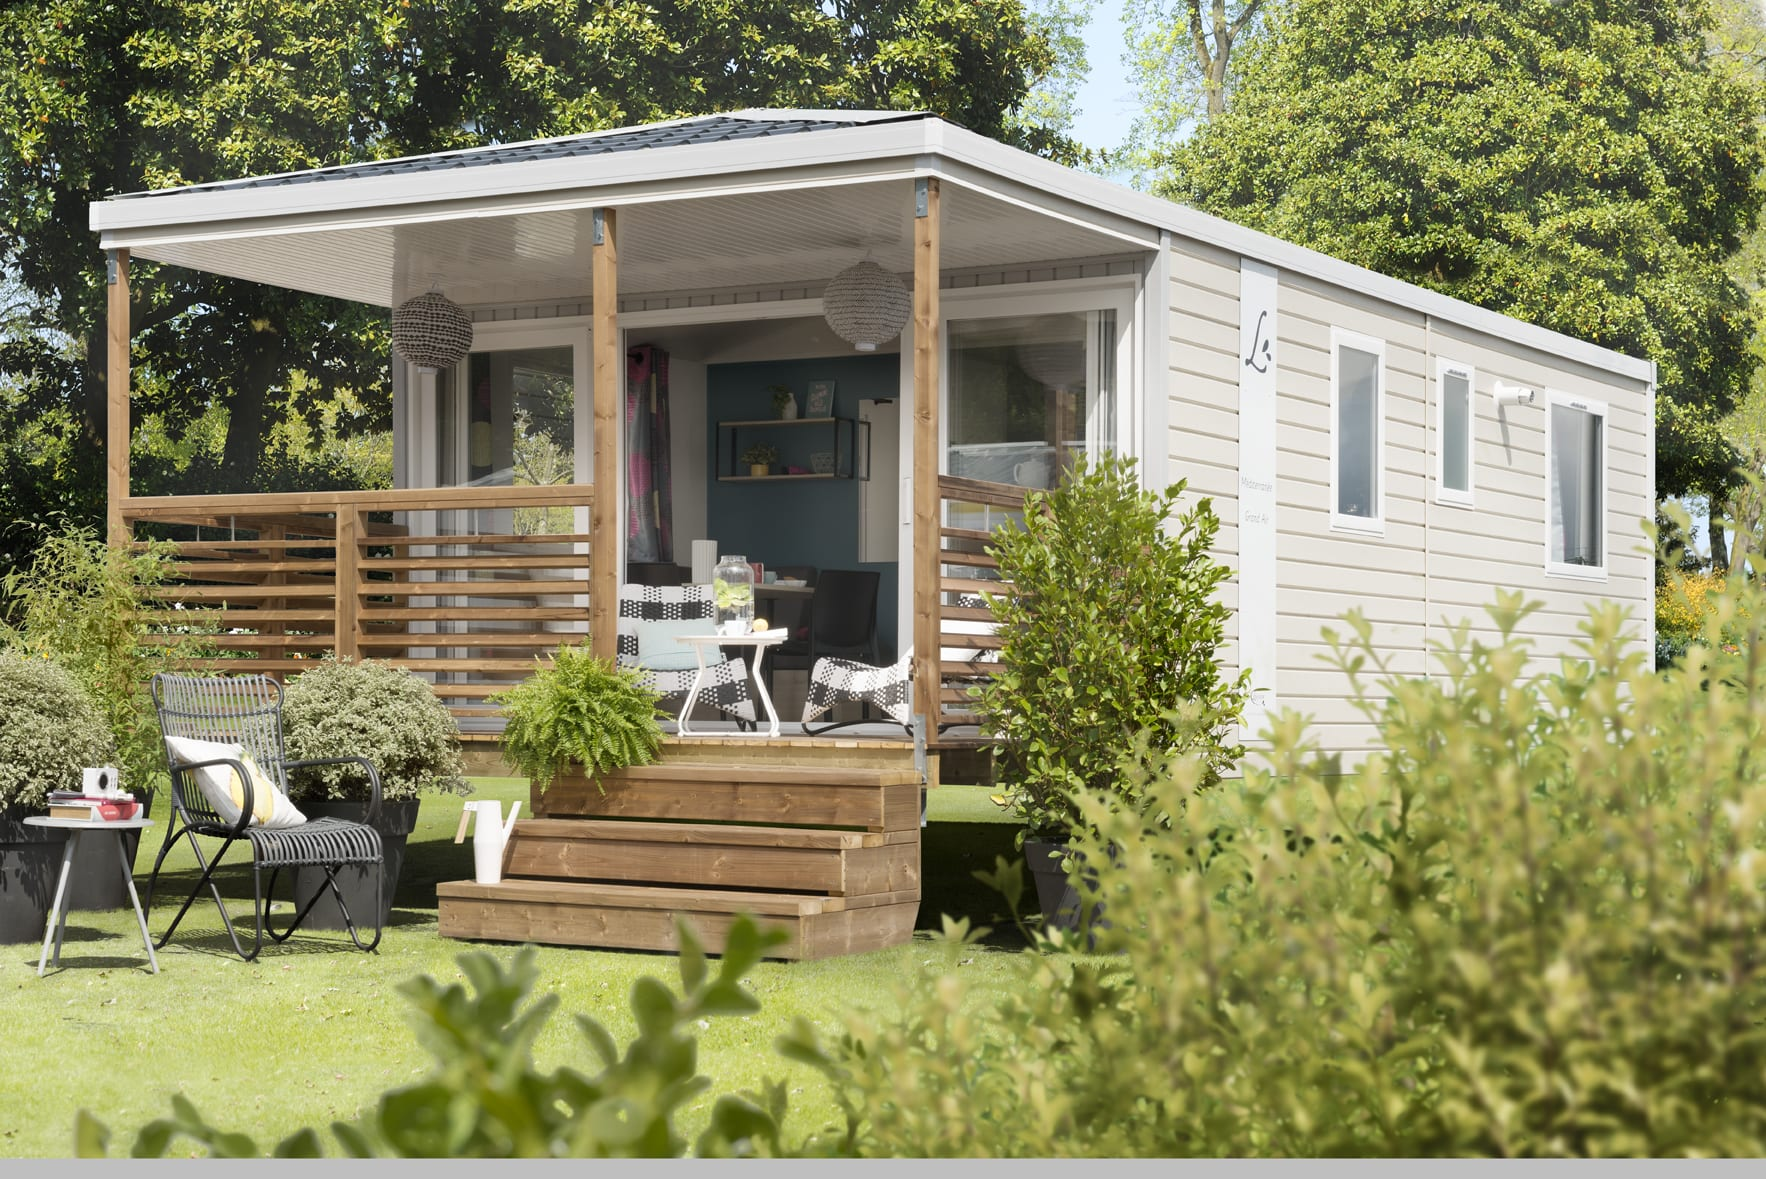 LOUISIANE MEDITERRANEE GRAND AIR - Mobil home neuf - Gamme Vacance - Zen Mobil homes- 2 chambres - Etauliers 33820 - Gironde